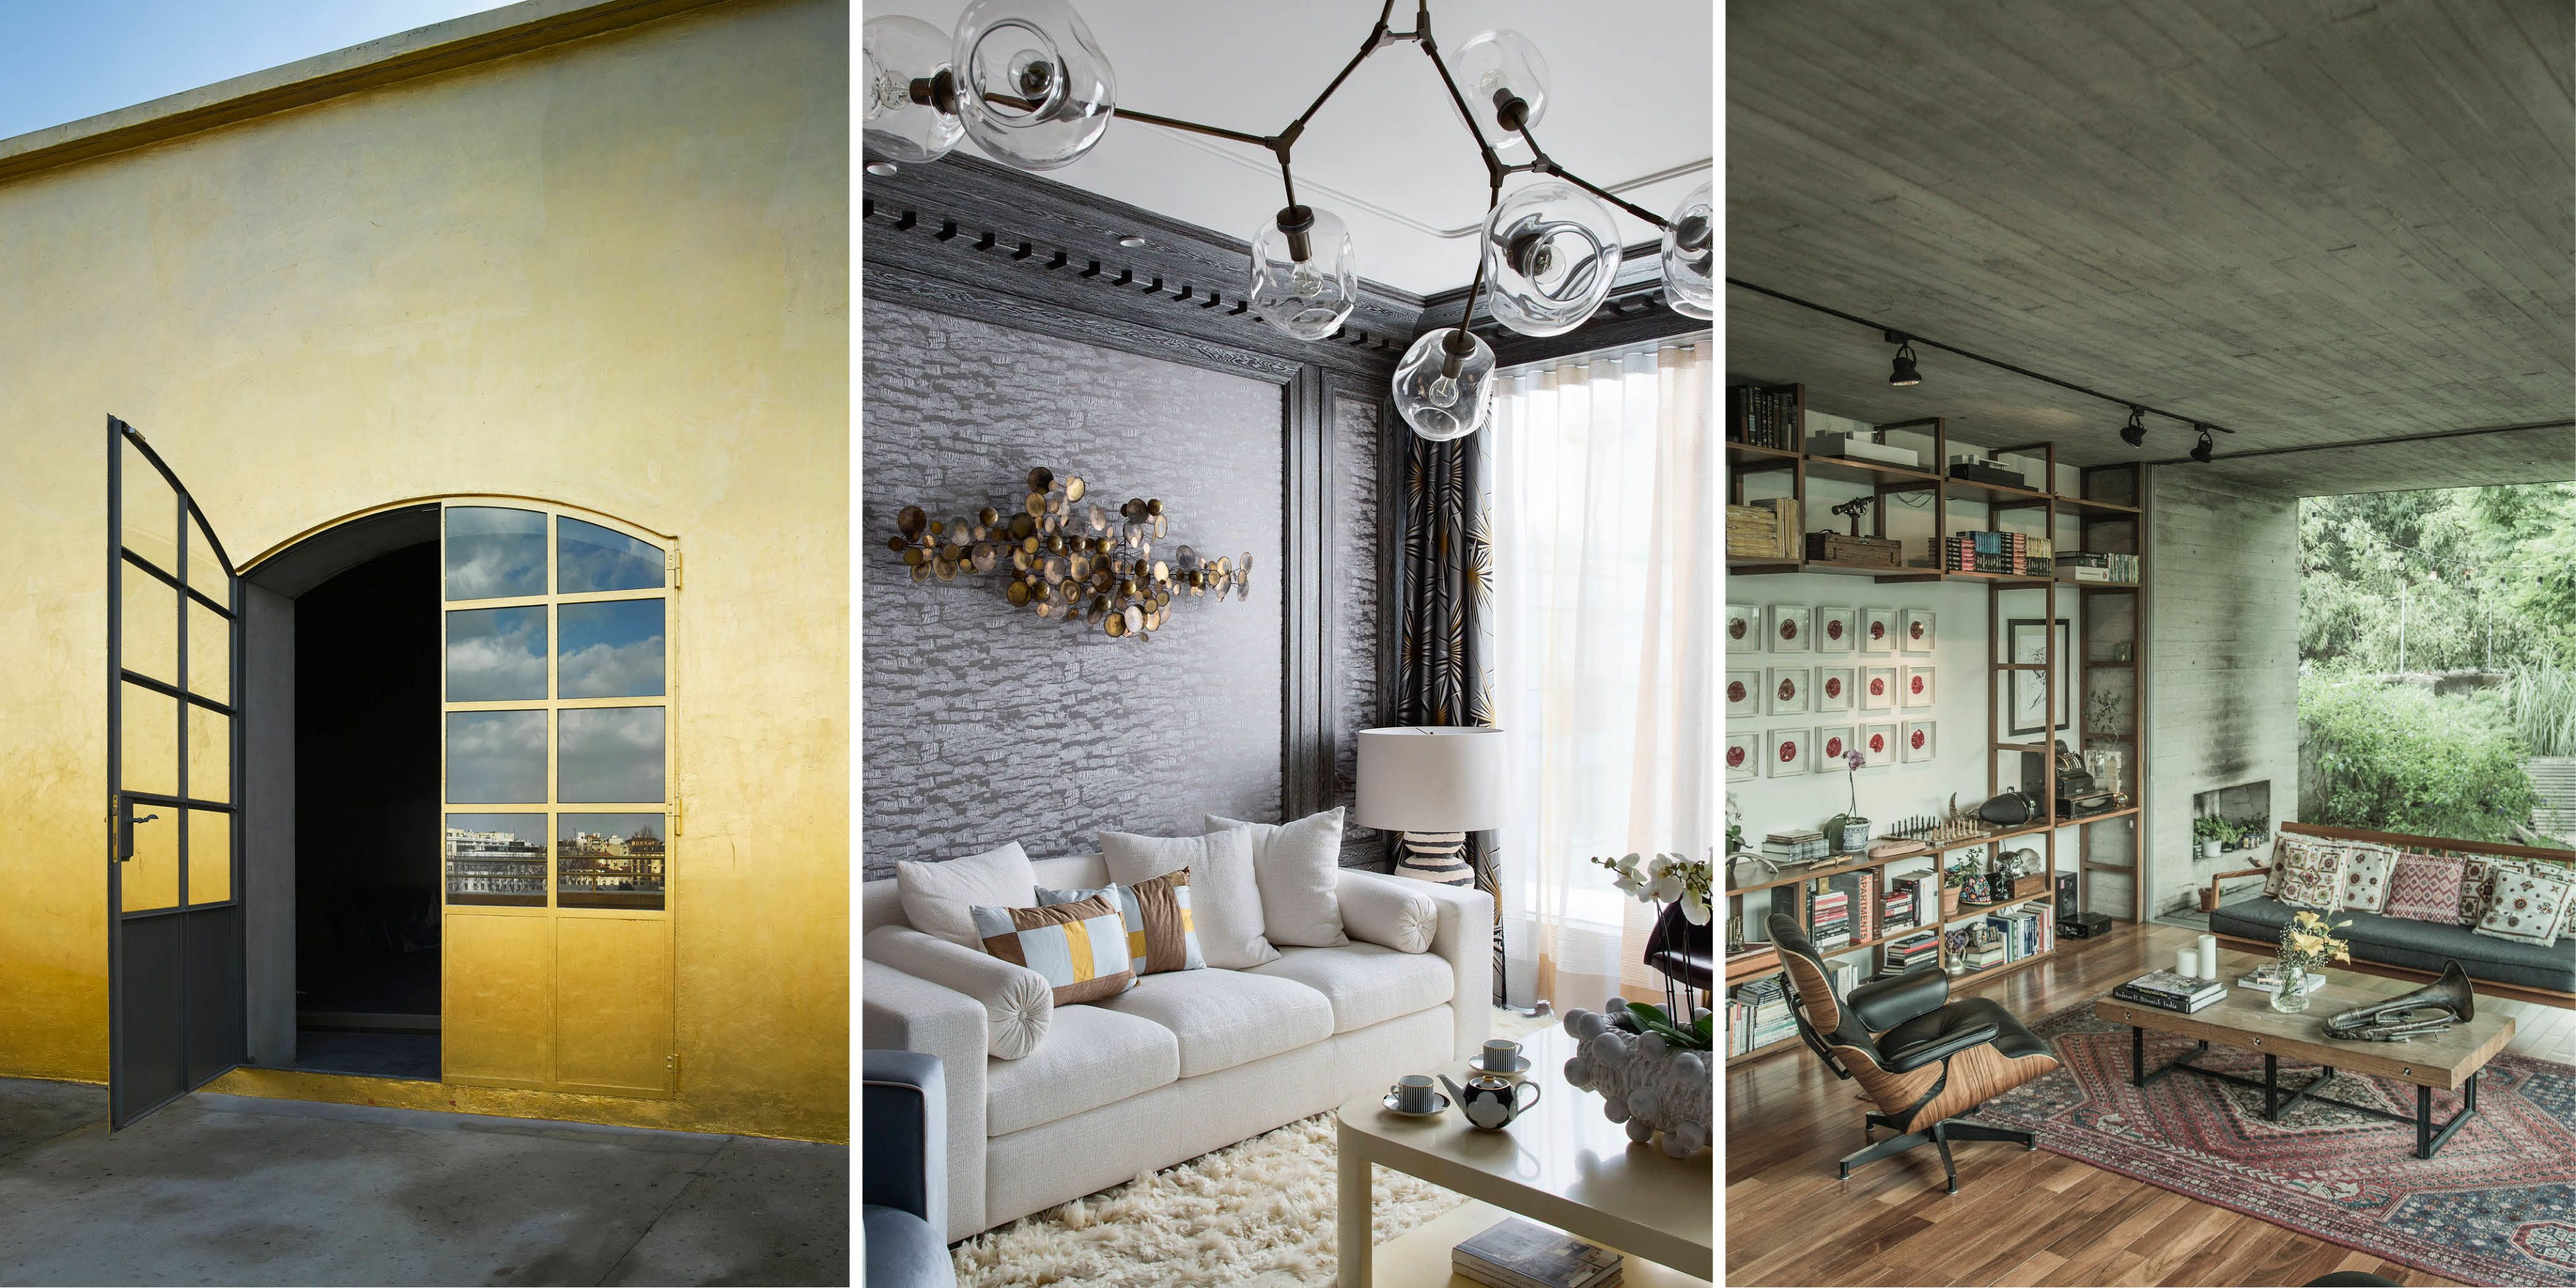 From Japan To South Africa And Back To The U.S., We Got The Inside Scoop  From ELLE DECOR International Editors On The Latest Home Trends Around The  World.